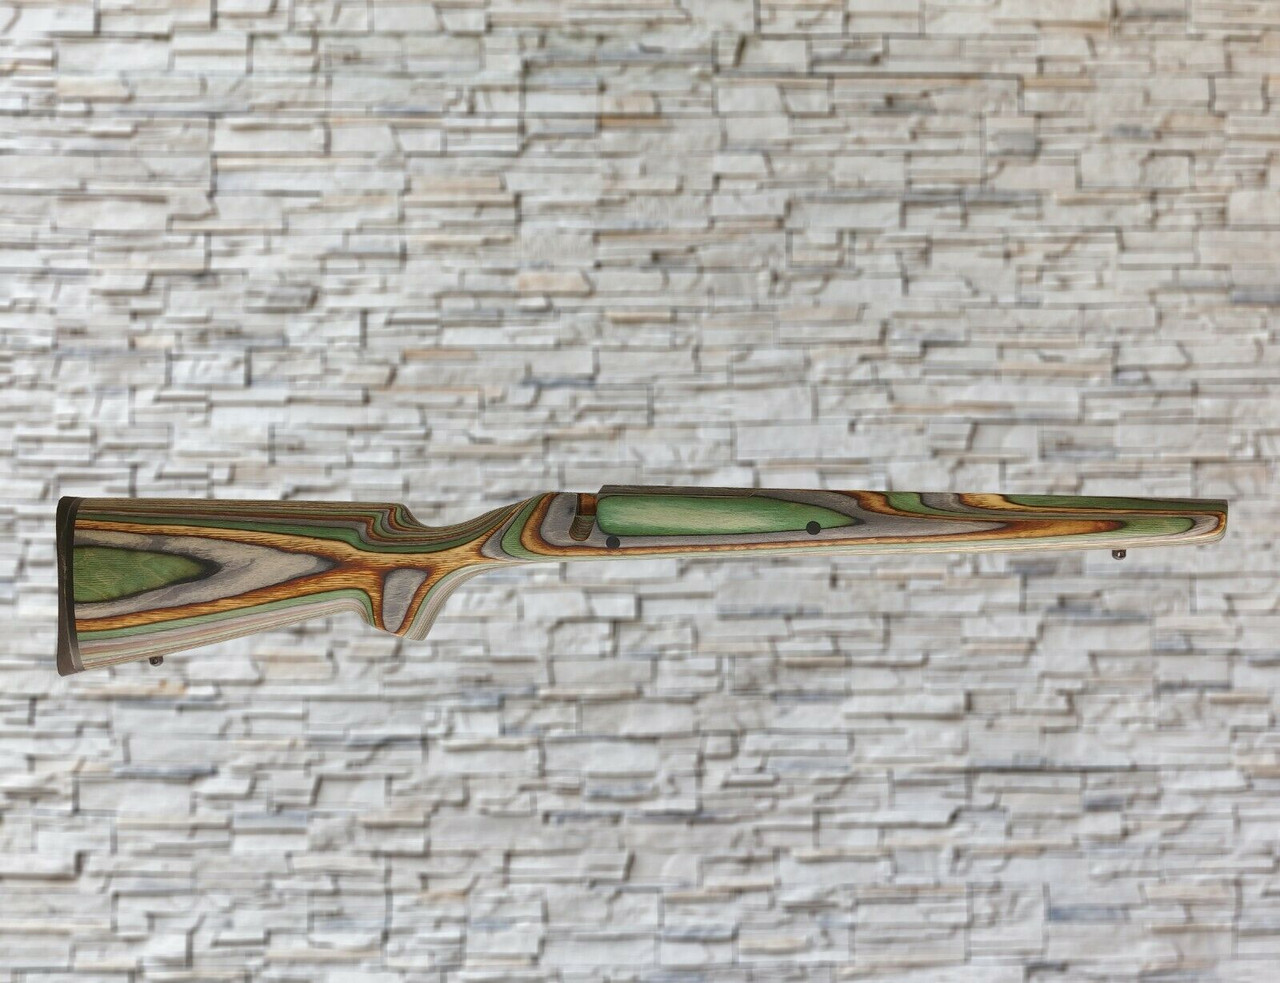 Boyds Classic Wood Stock Camo for Mossberg 100 ATR Long Action Rifle